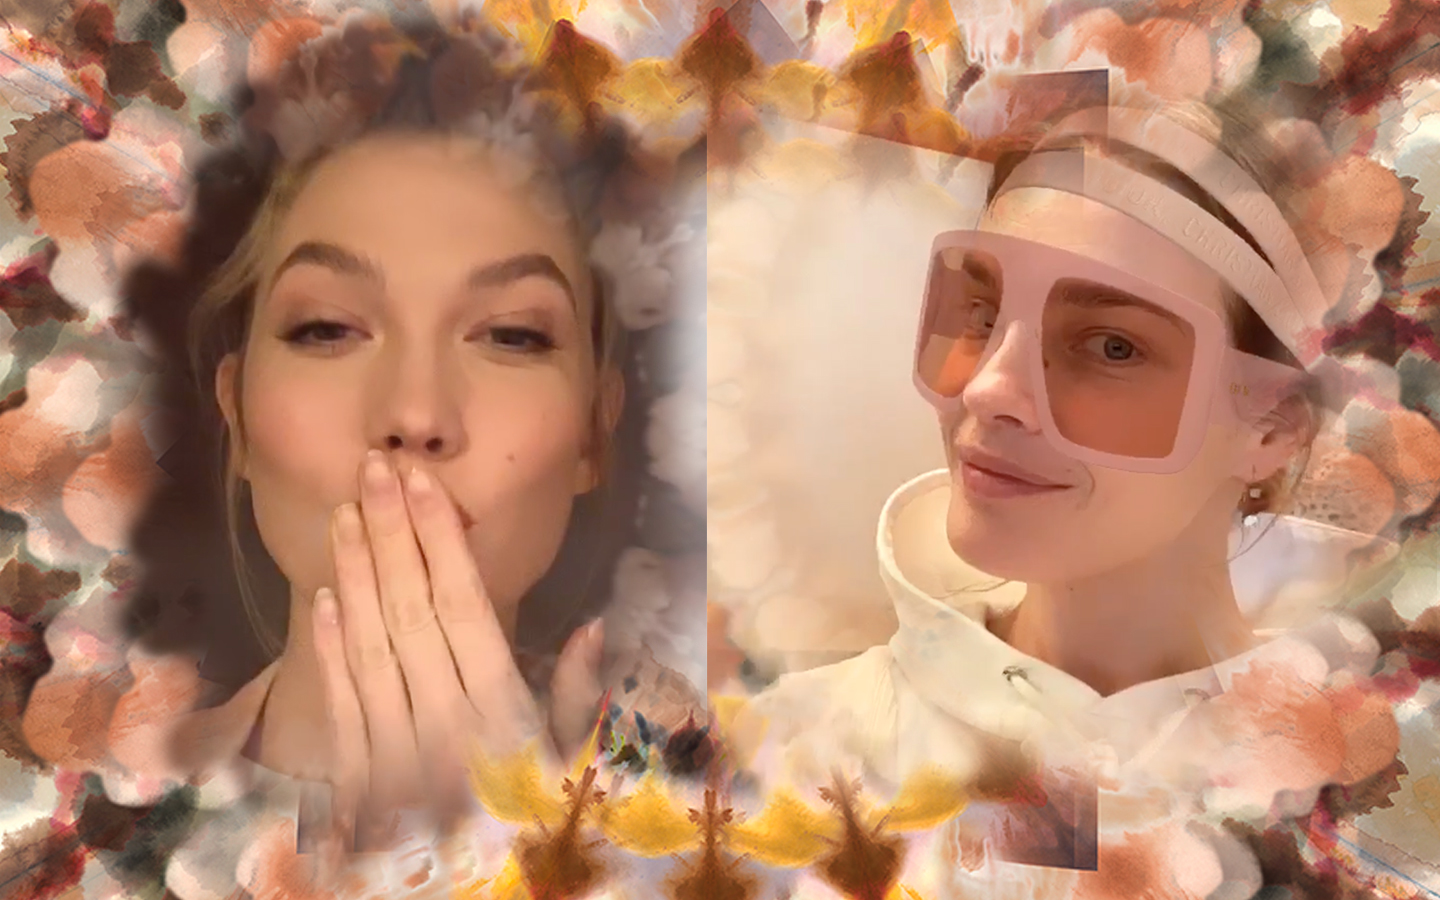 Karlie Kloss and Natalia Vodianova try out Dior's AR filter on Instagram